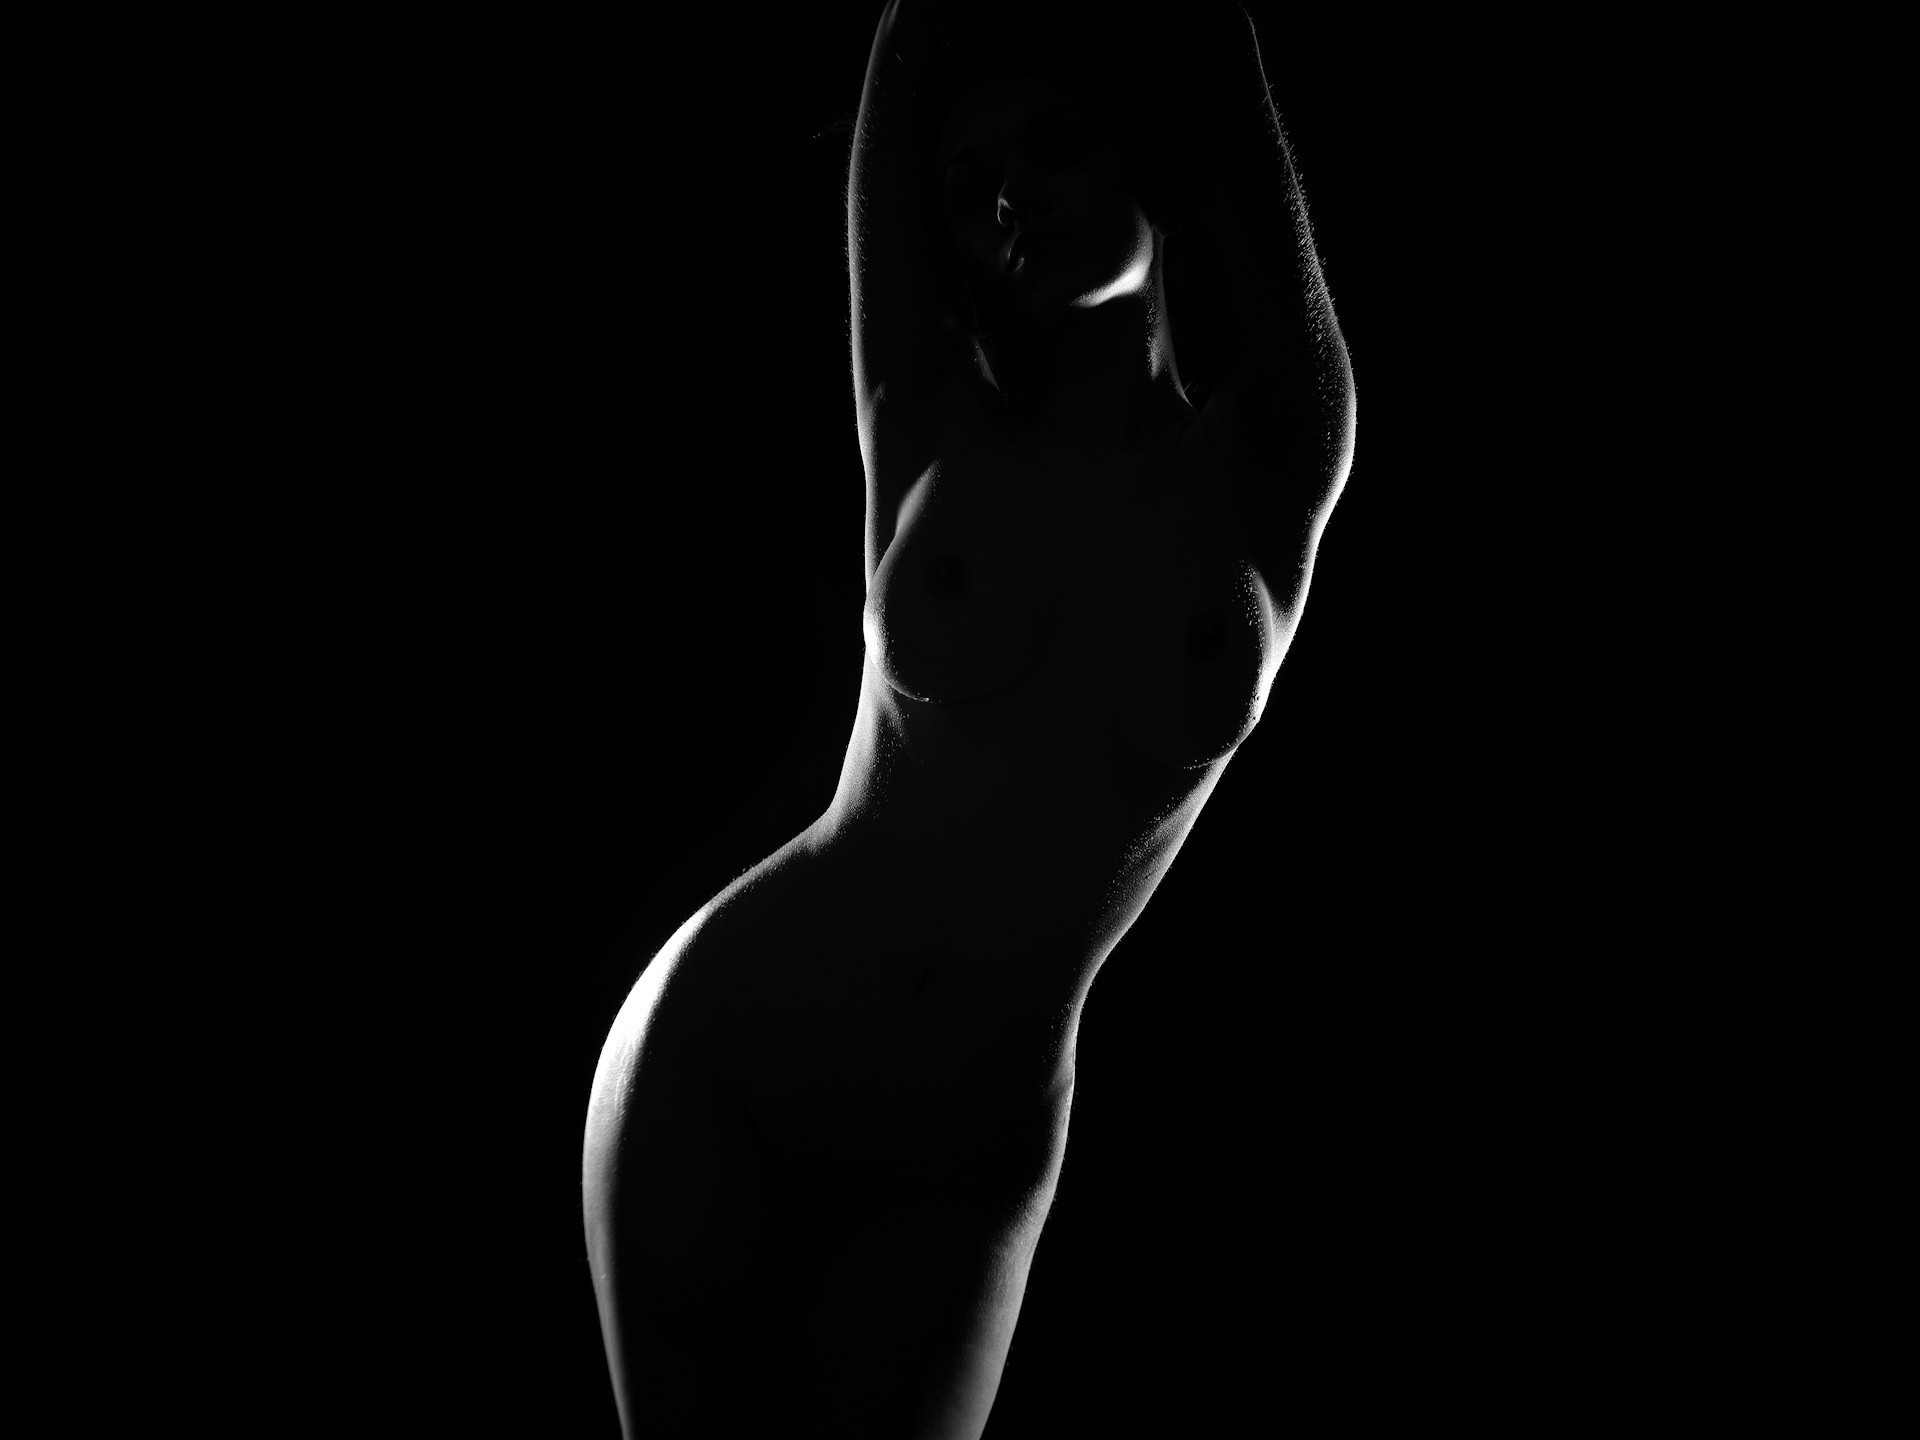 nude-wallpaper-for-phone